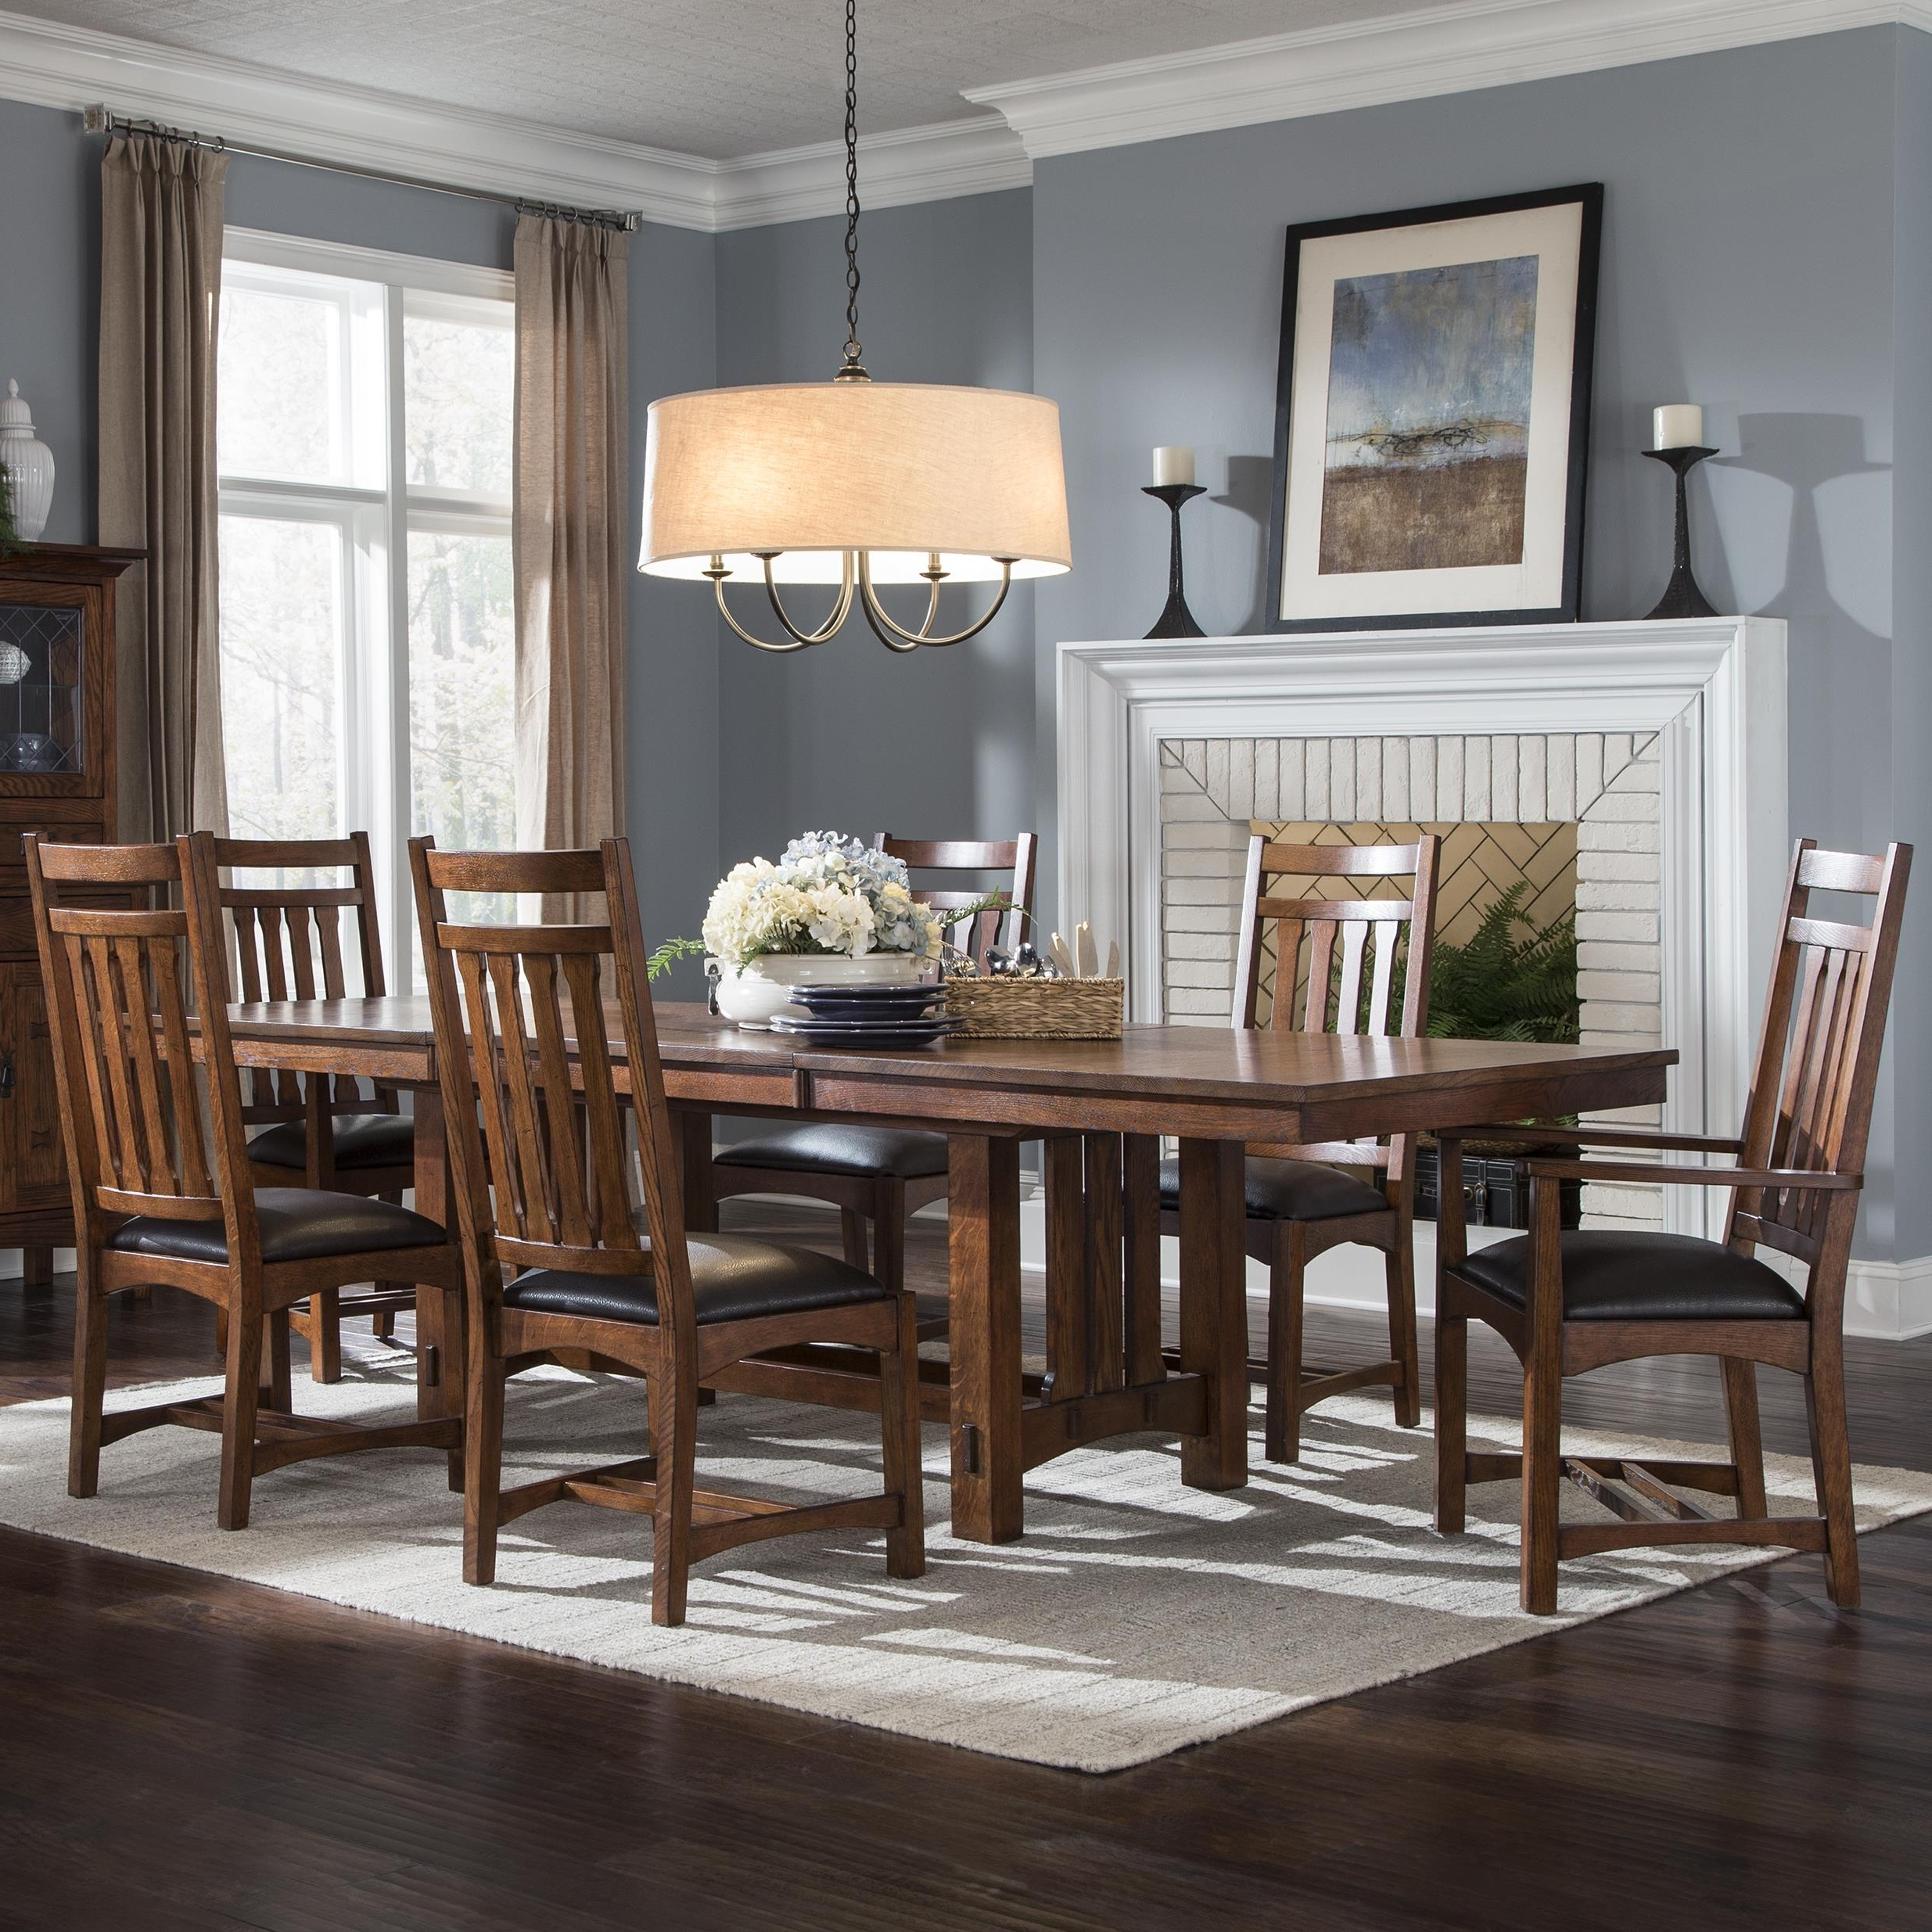 Newest Craftsman 7 Piece Rectangular Extension Dining Sets With Arm & Uph Side Chairs With Regard To Vfm Signature Oak Park 7 Piece Dining Set With Slat Back Chairs (View 19 of 25)